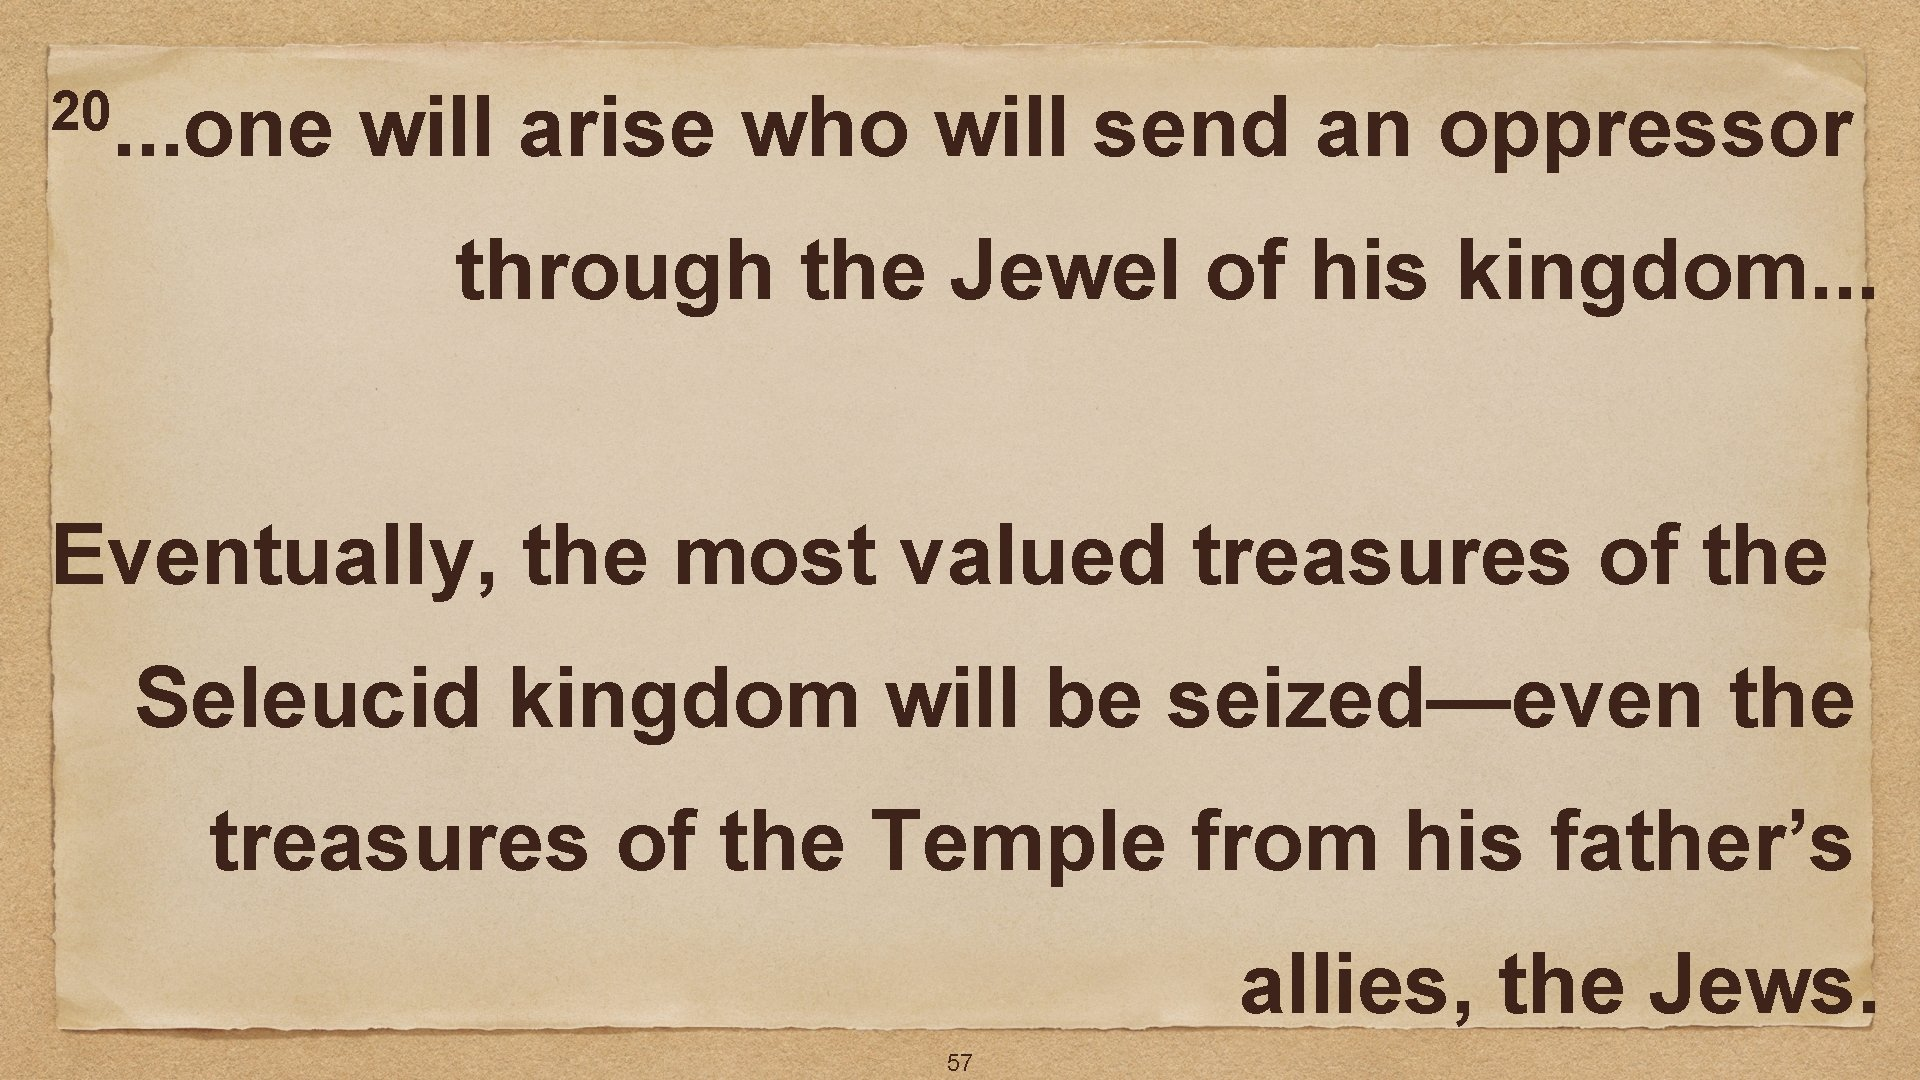 20. . . one will arise who will send an oppressor through the Jewel